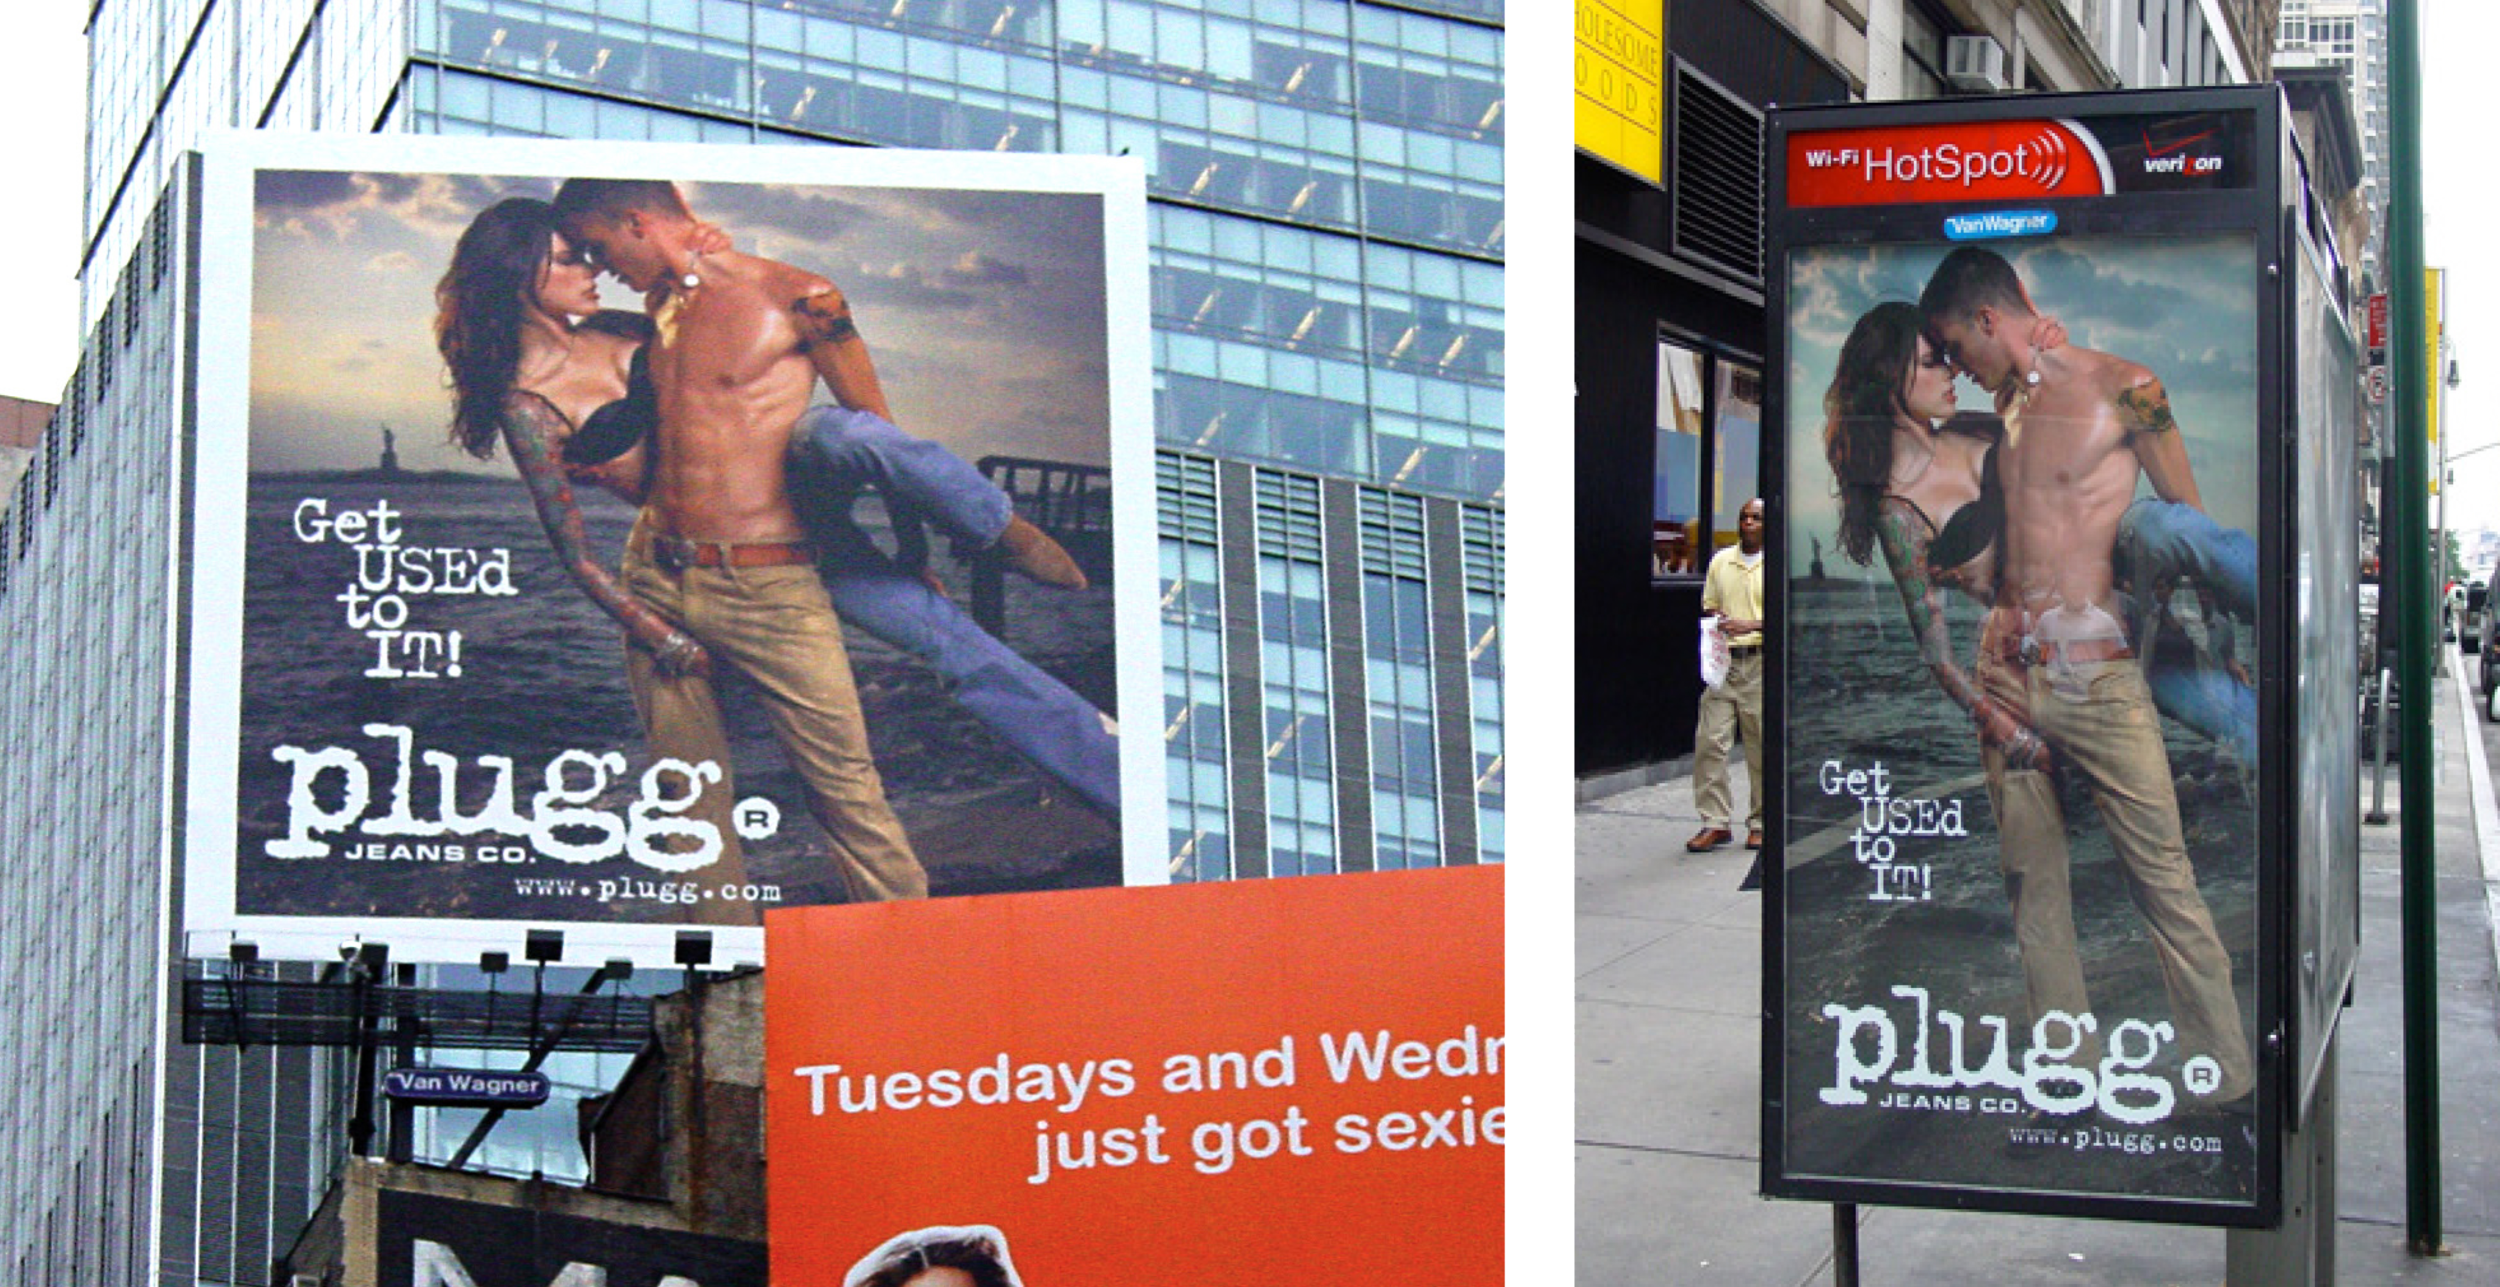 Times Square Billboard and Phone Booth Ads